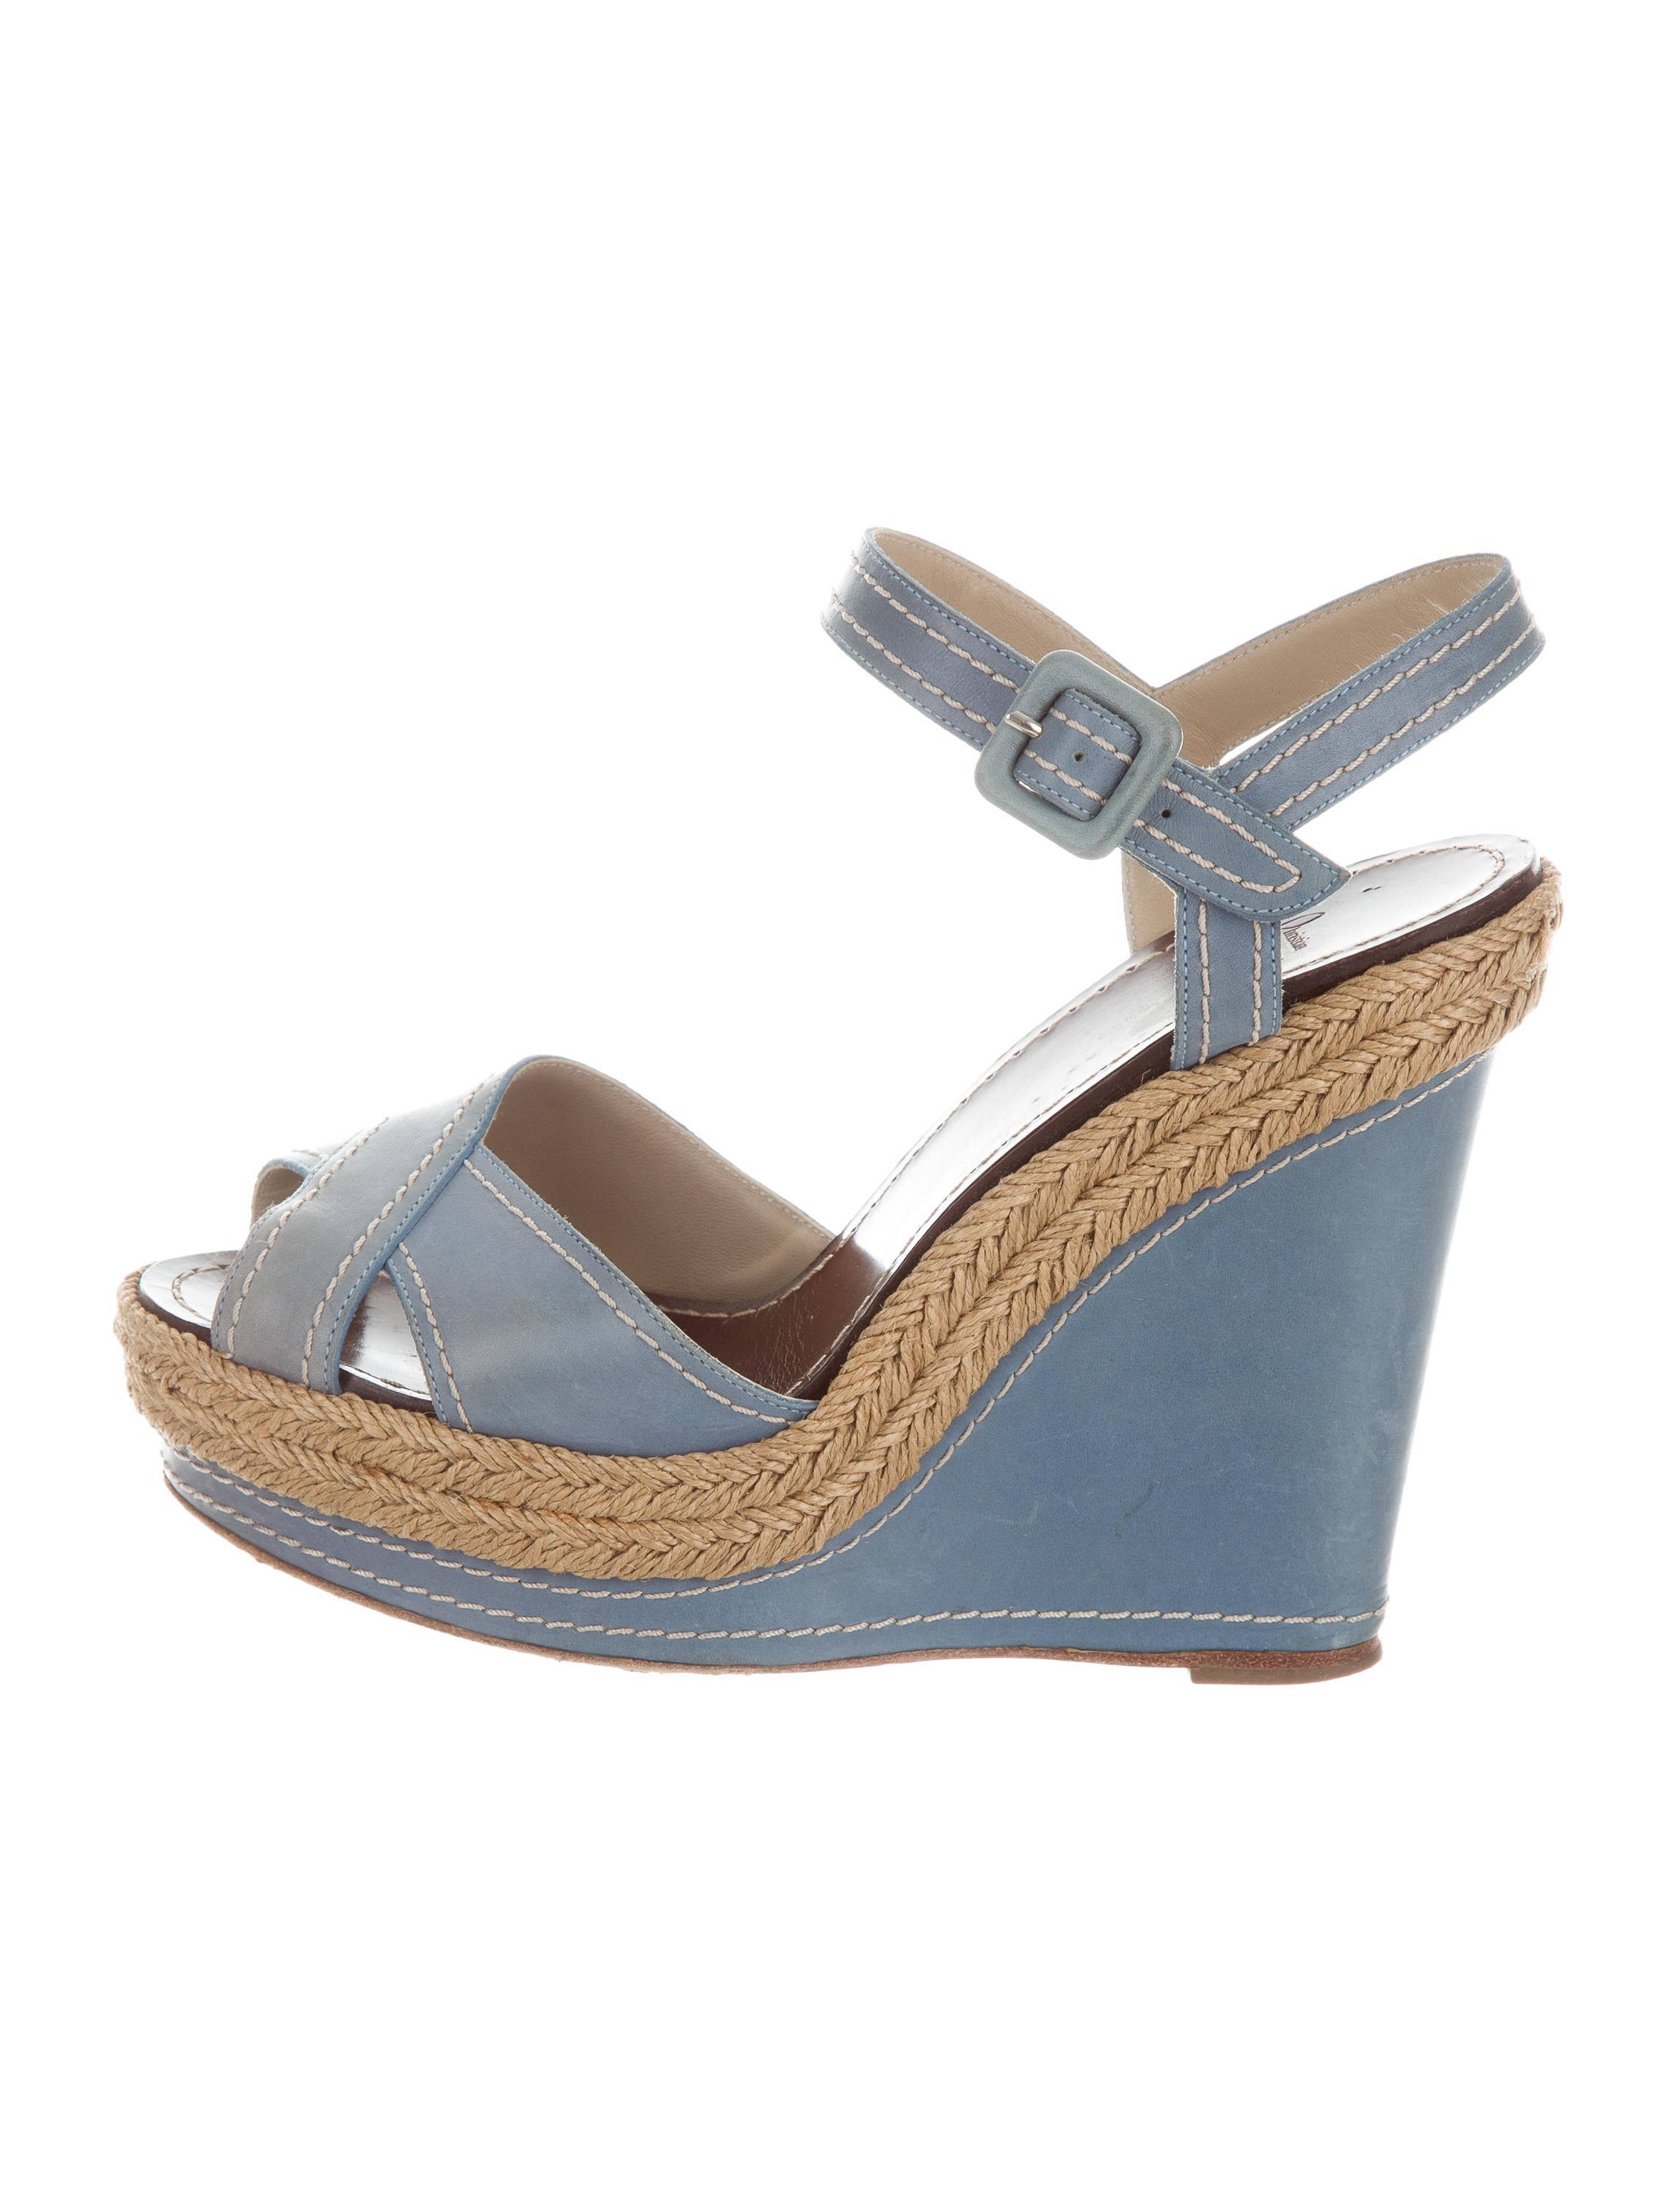 Christian Louboutin Leather Crossover Wedges sale professional 83V4C4